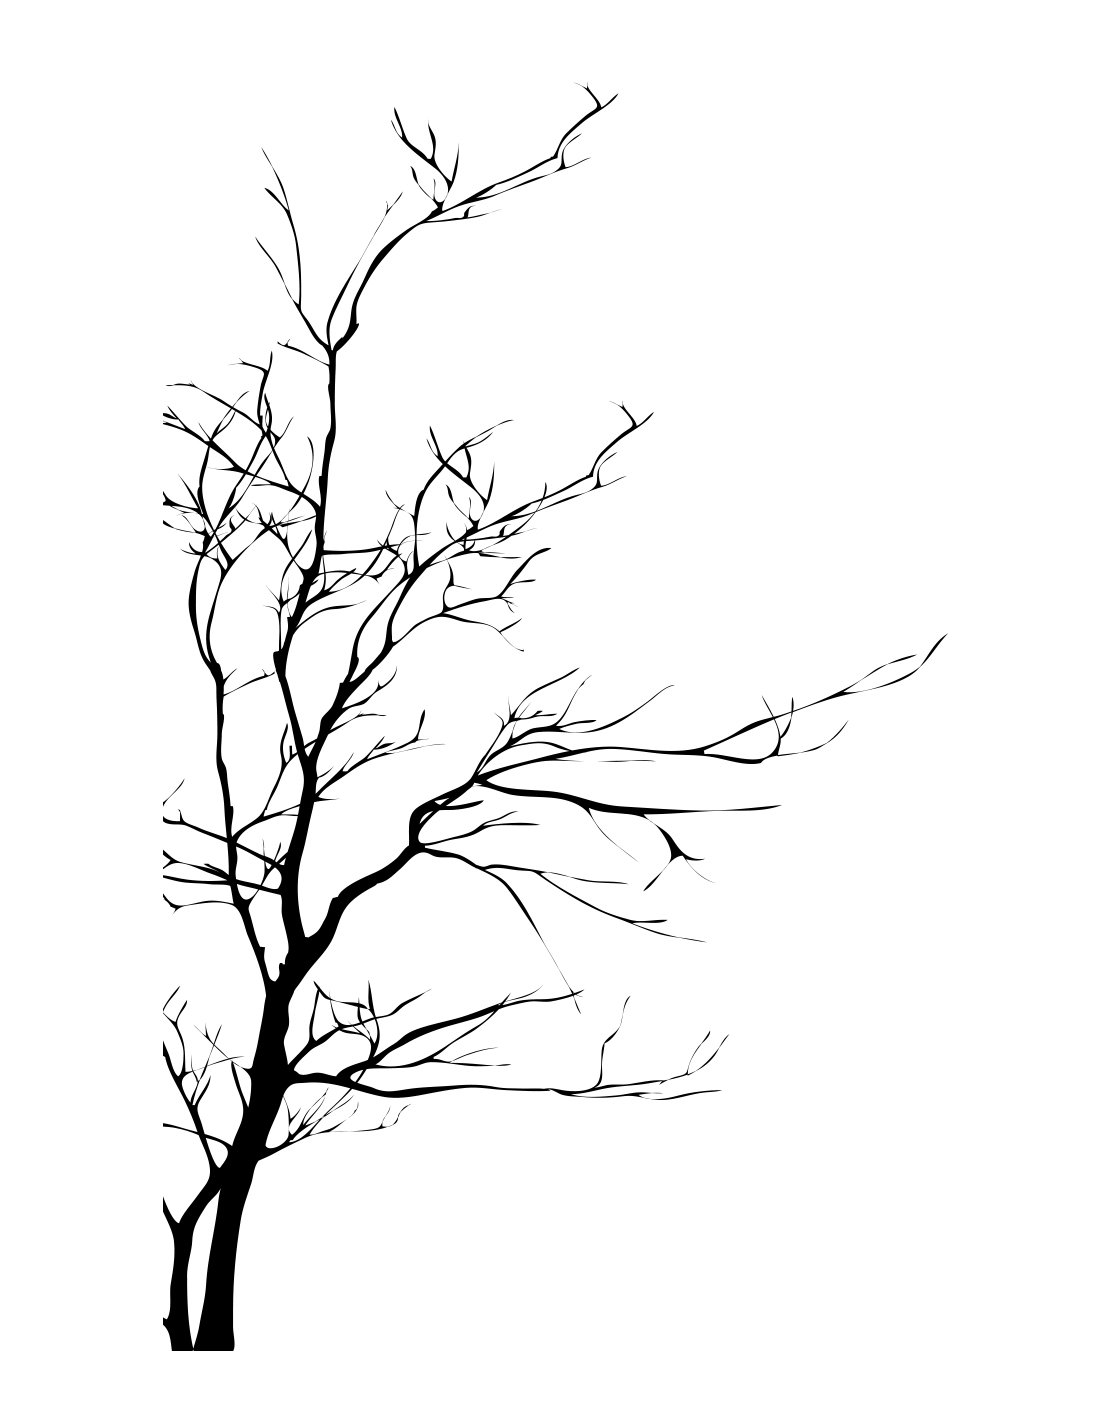 """CDM product Stickerbrand Nature Vinyl Wall Art Bare Tree Branch Wall Decal Sticker - Black, 60"""" x 35"""". Easy to Apply & Removable. #AC223s big image"""